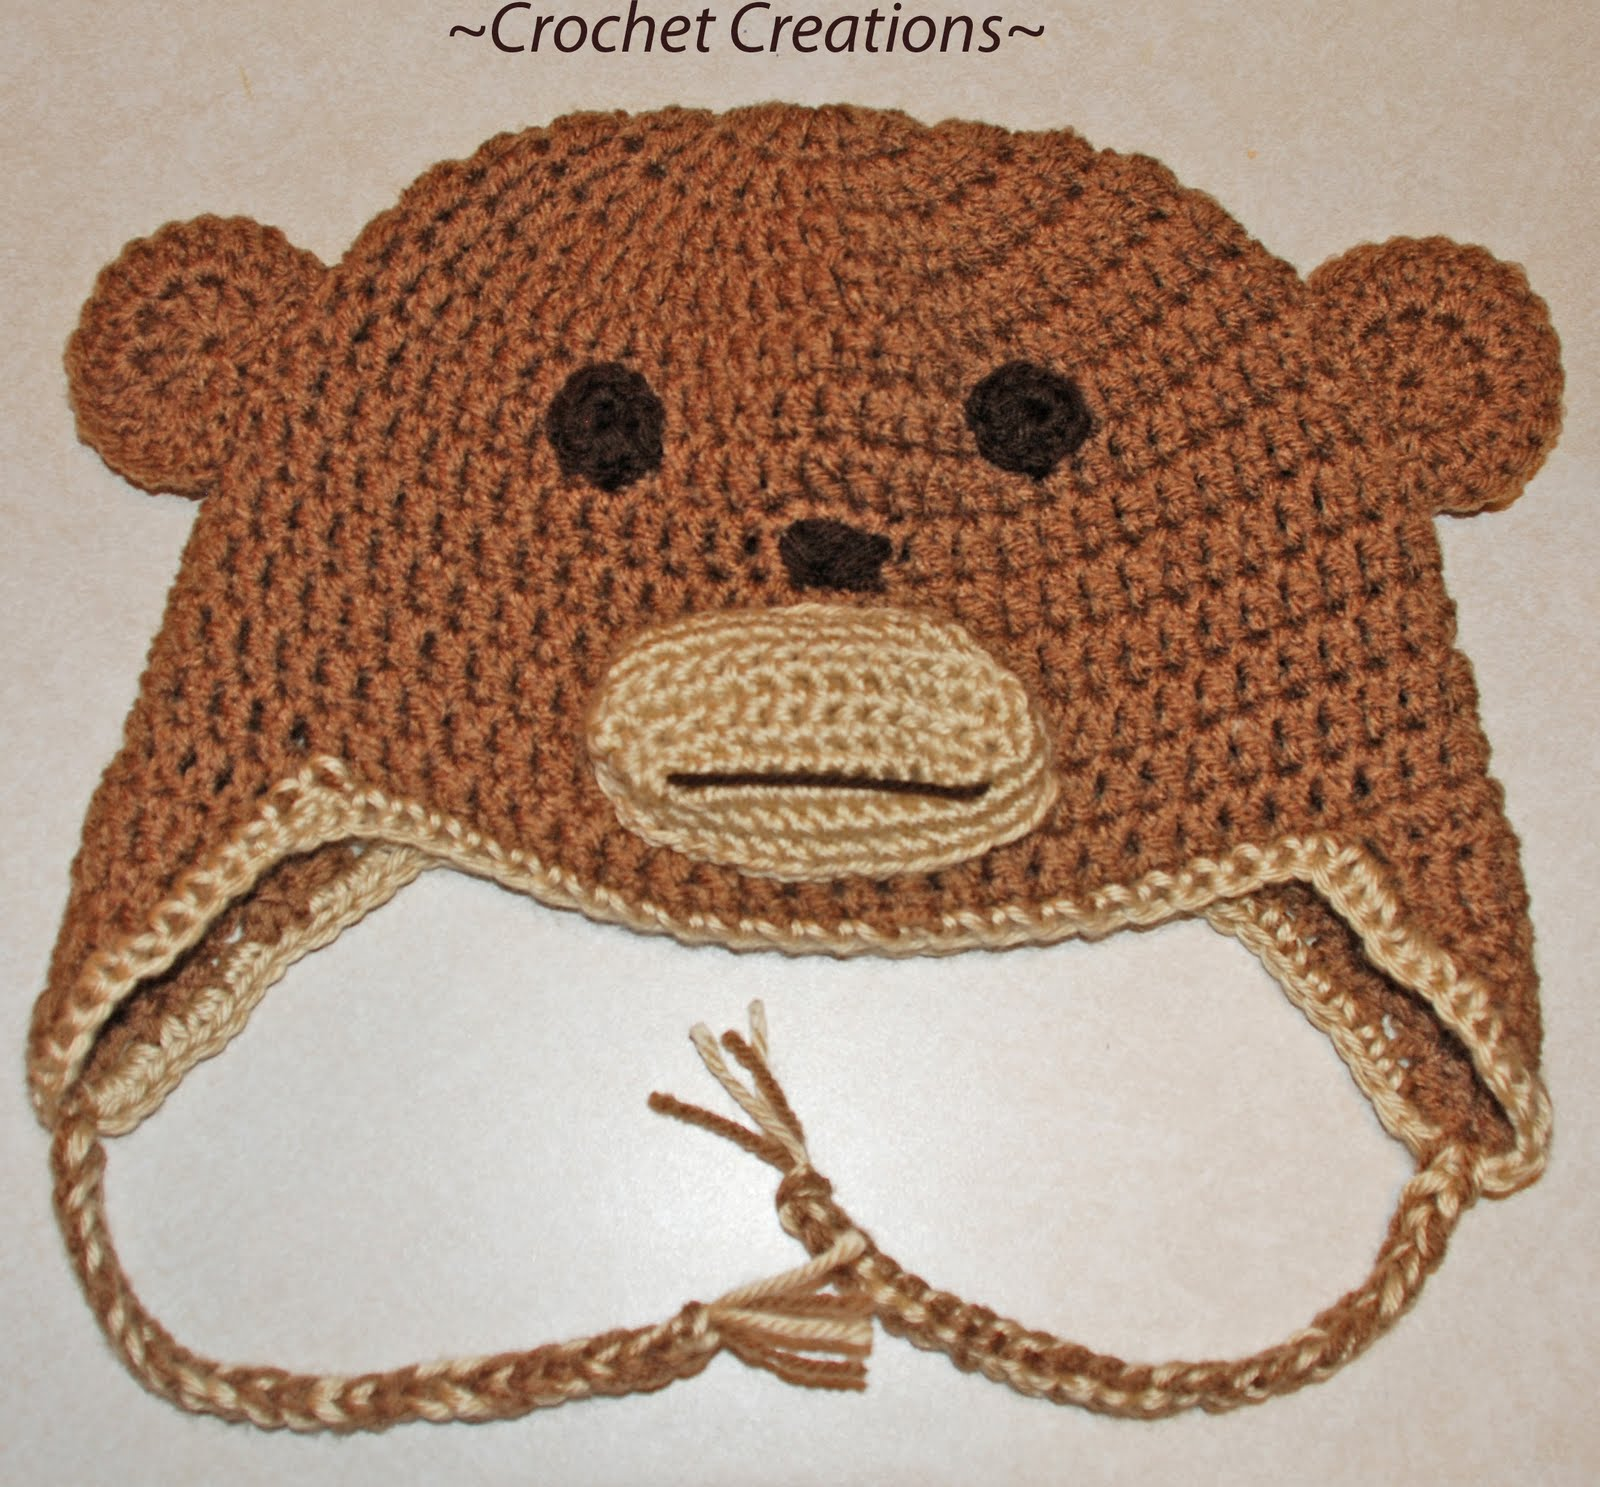 CROCHETED EAR FLAP HAT PATTERN - Crochet and Knitting Patterns